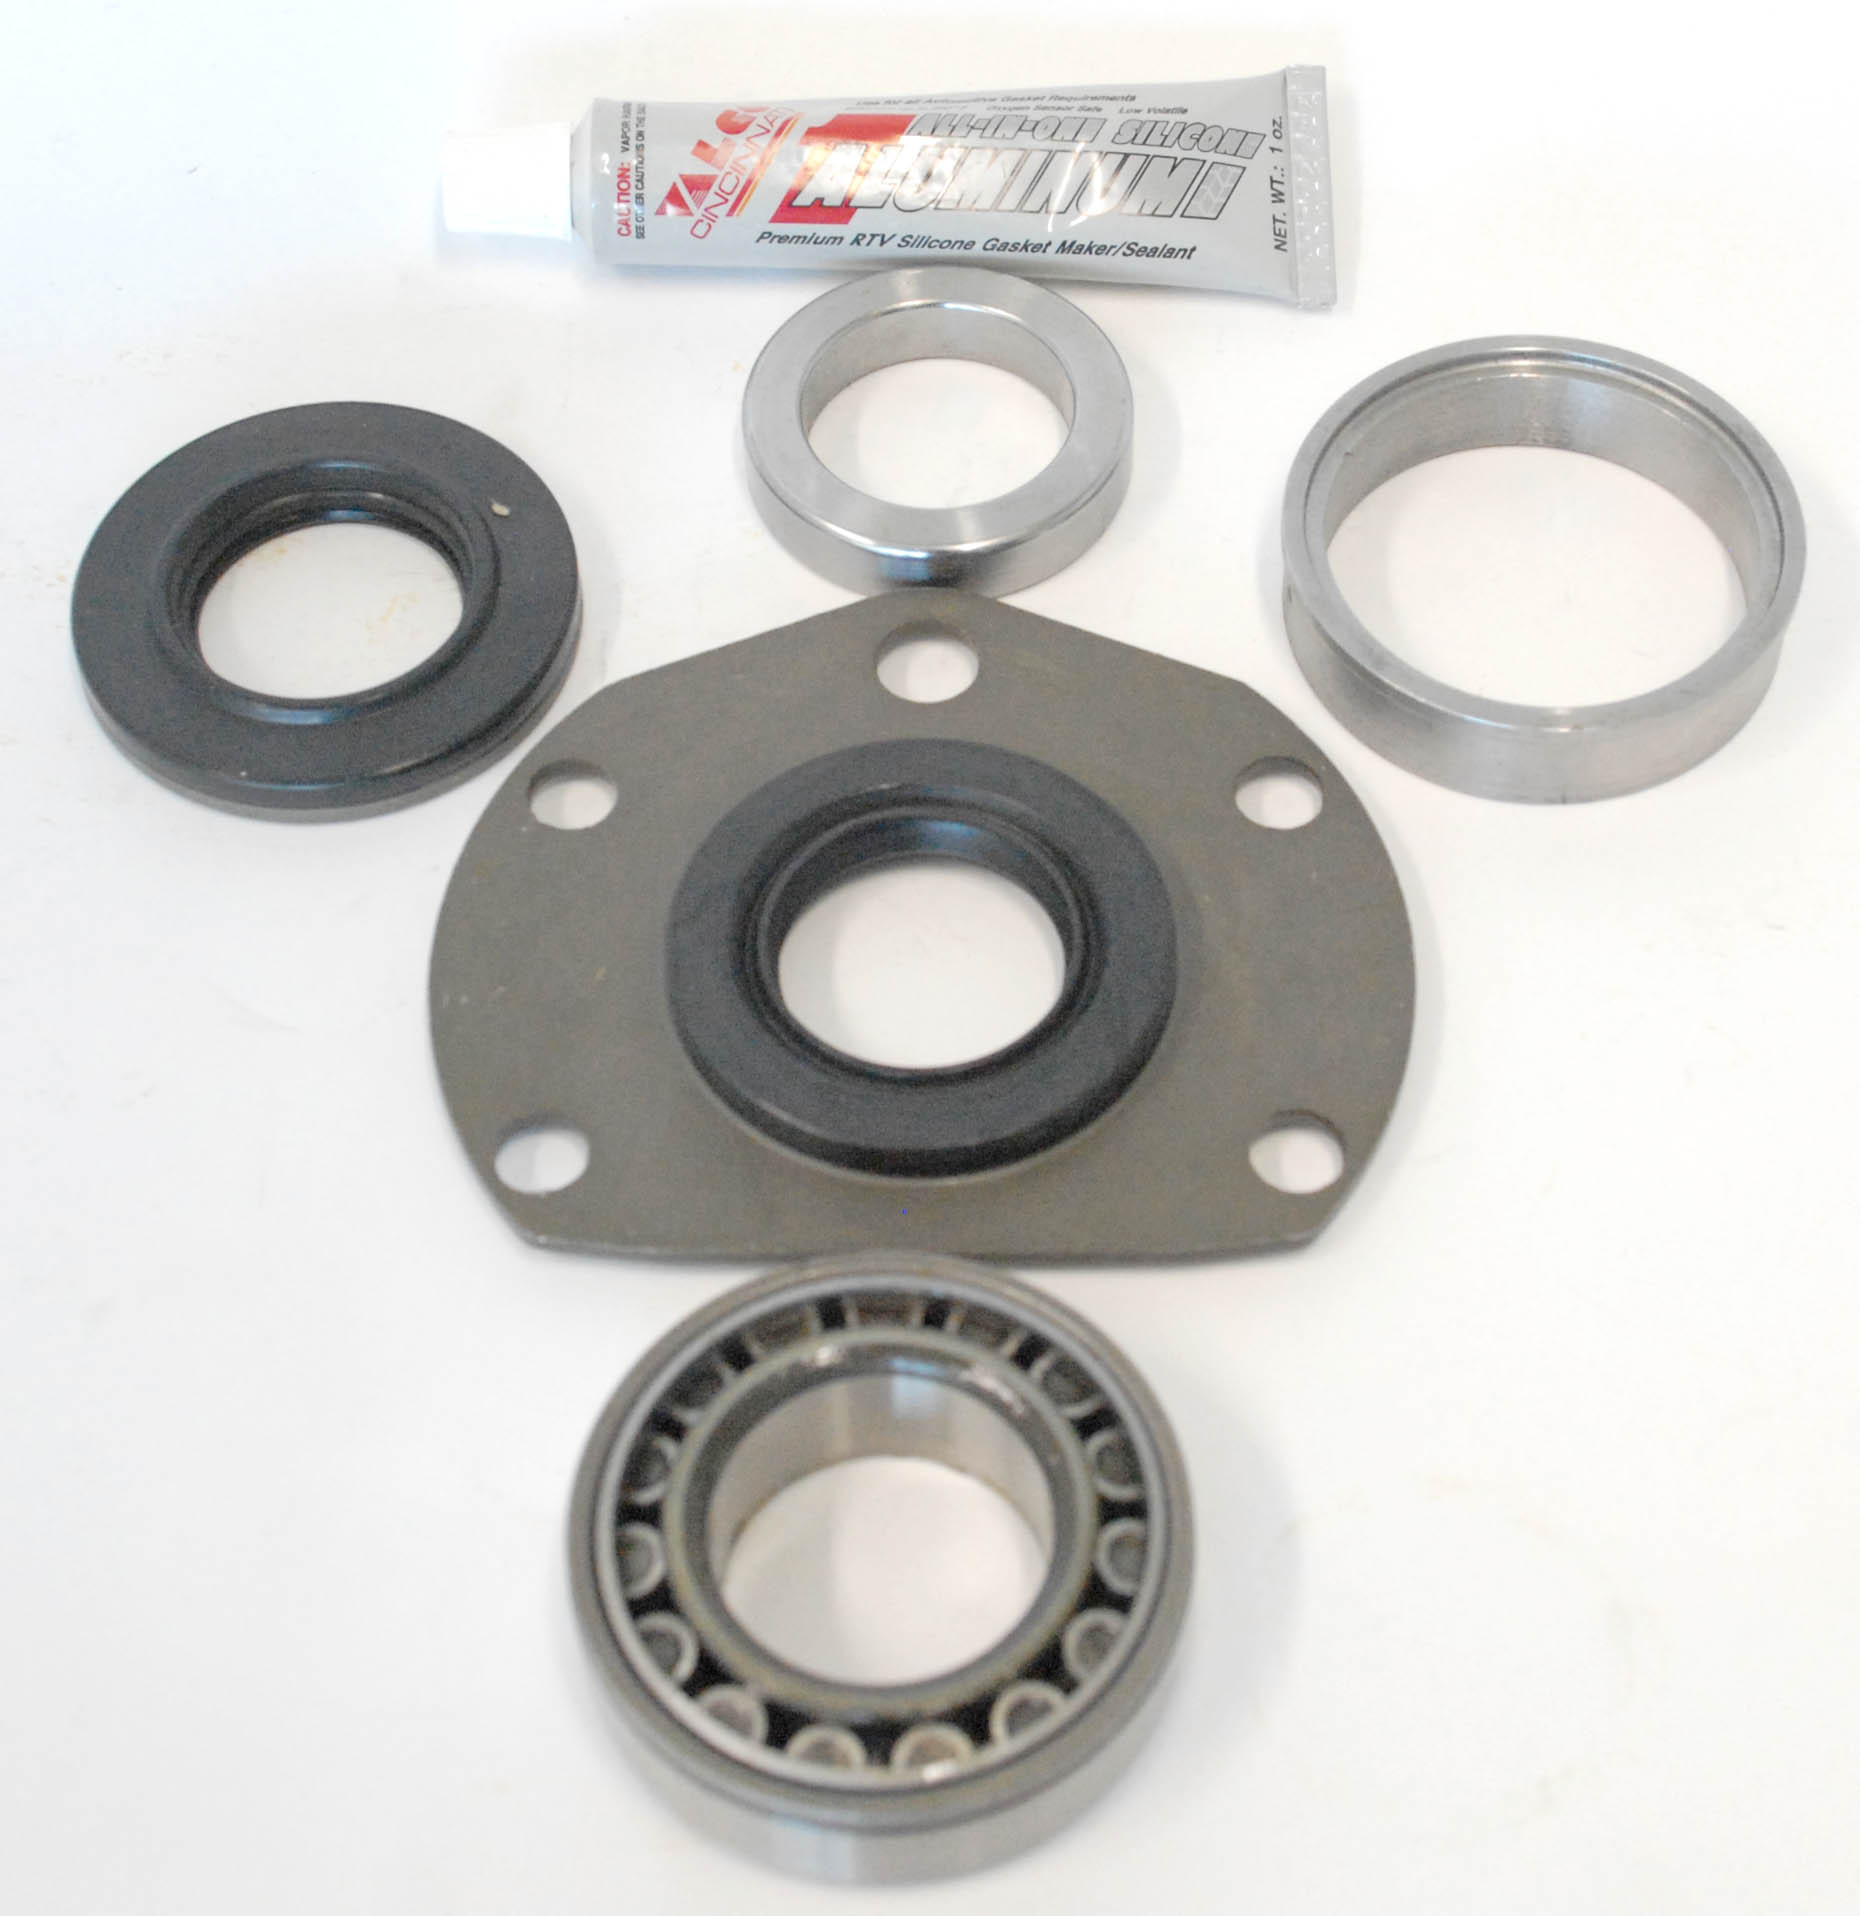 CJTBK-1/2 - Jeep Model 20 Replacement Tapered Bearing Kit (1-Side Only)